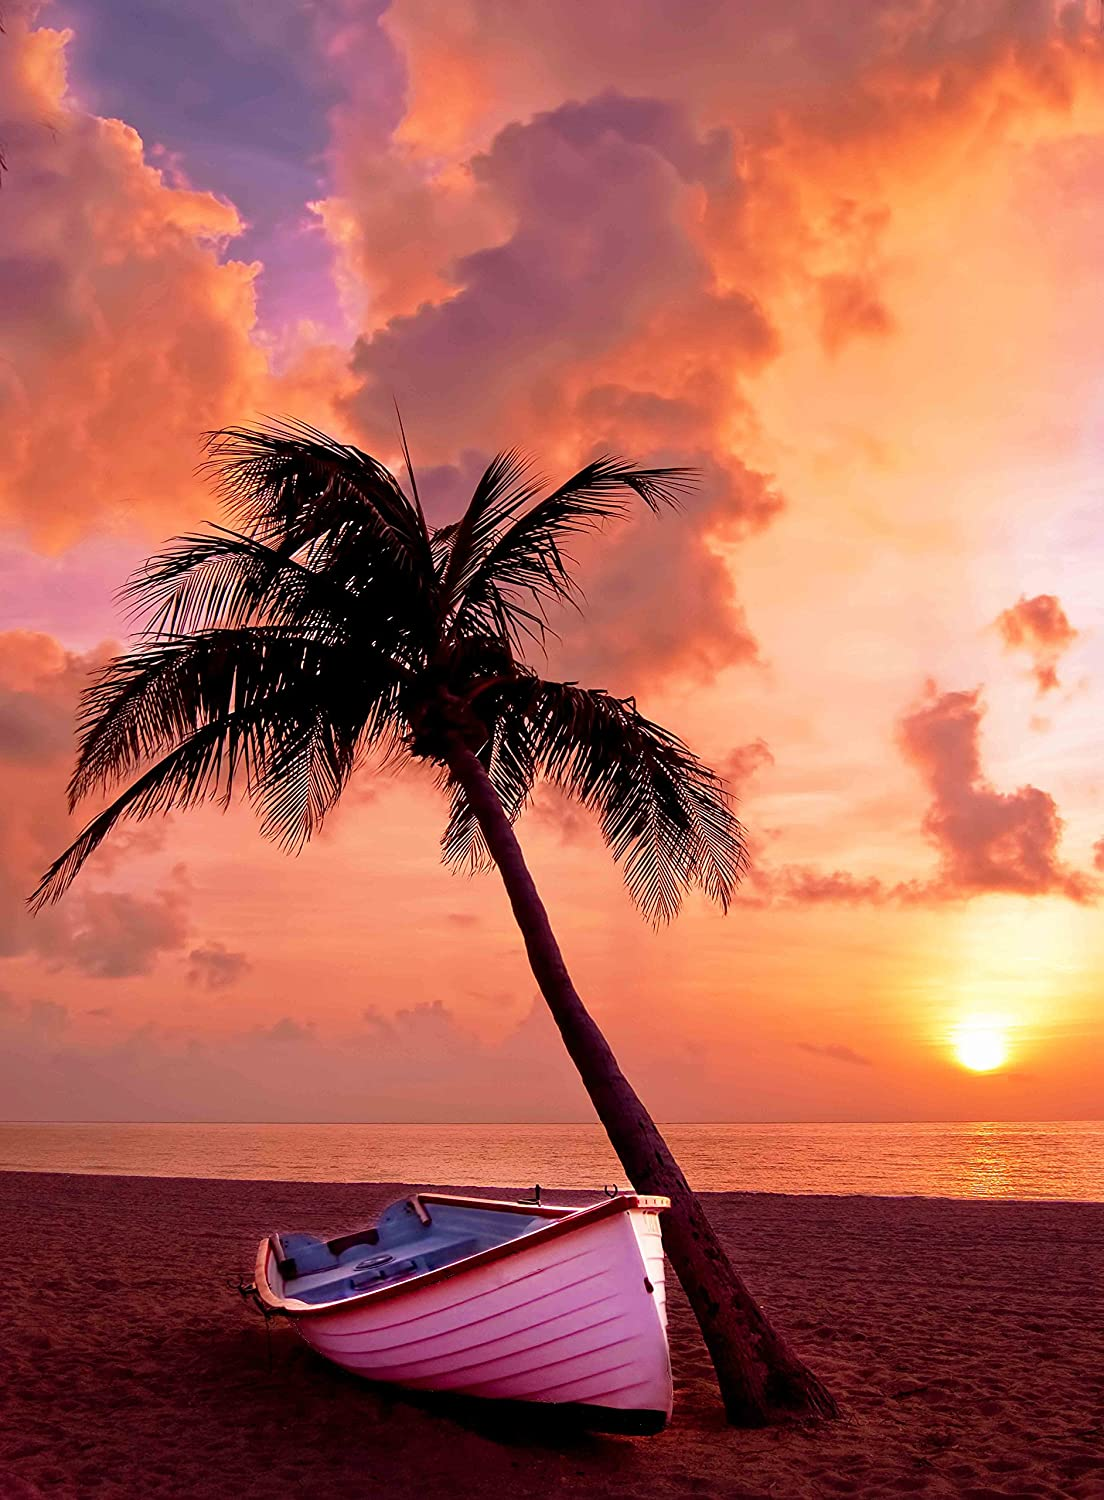 Adult Jigsaw Puzzle Colorful Beach Sunset Palm Tree Boat 500-Pieces